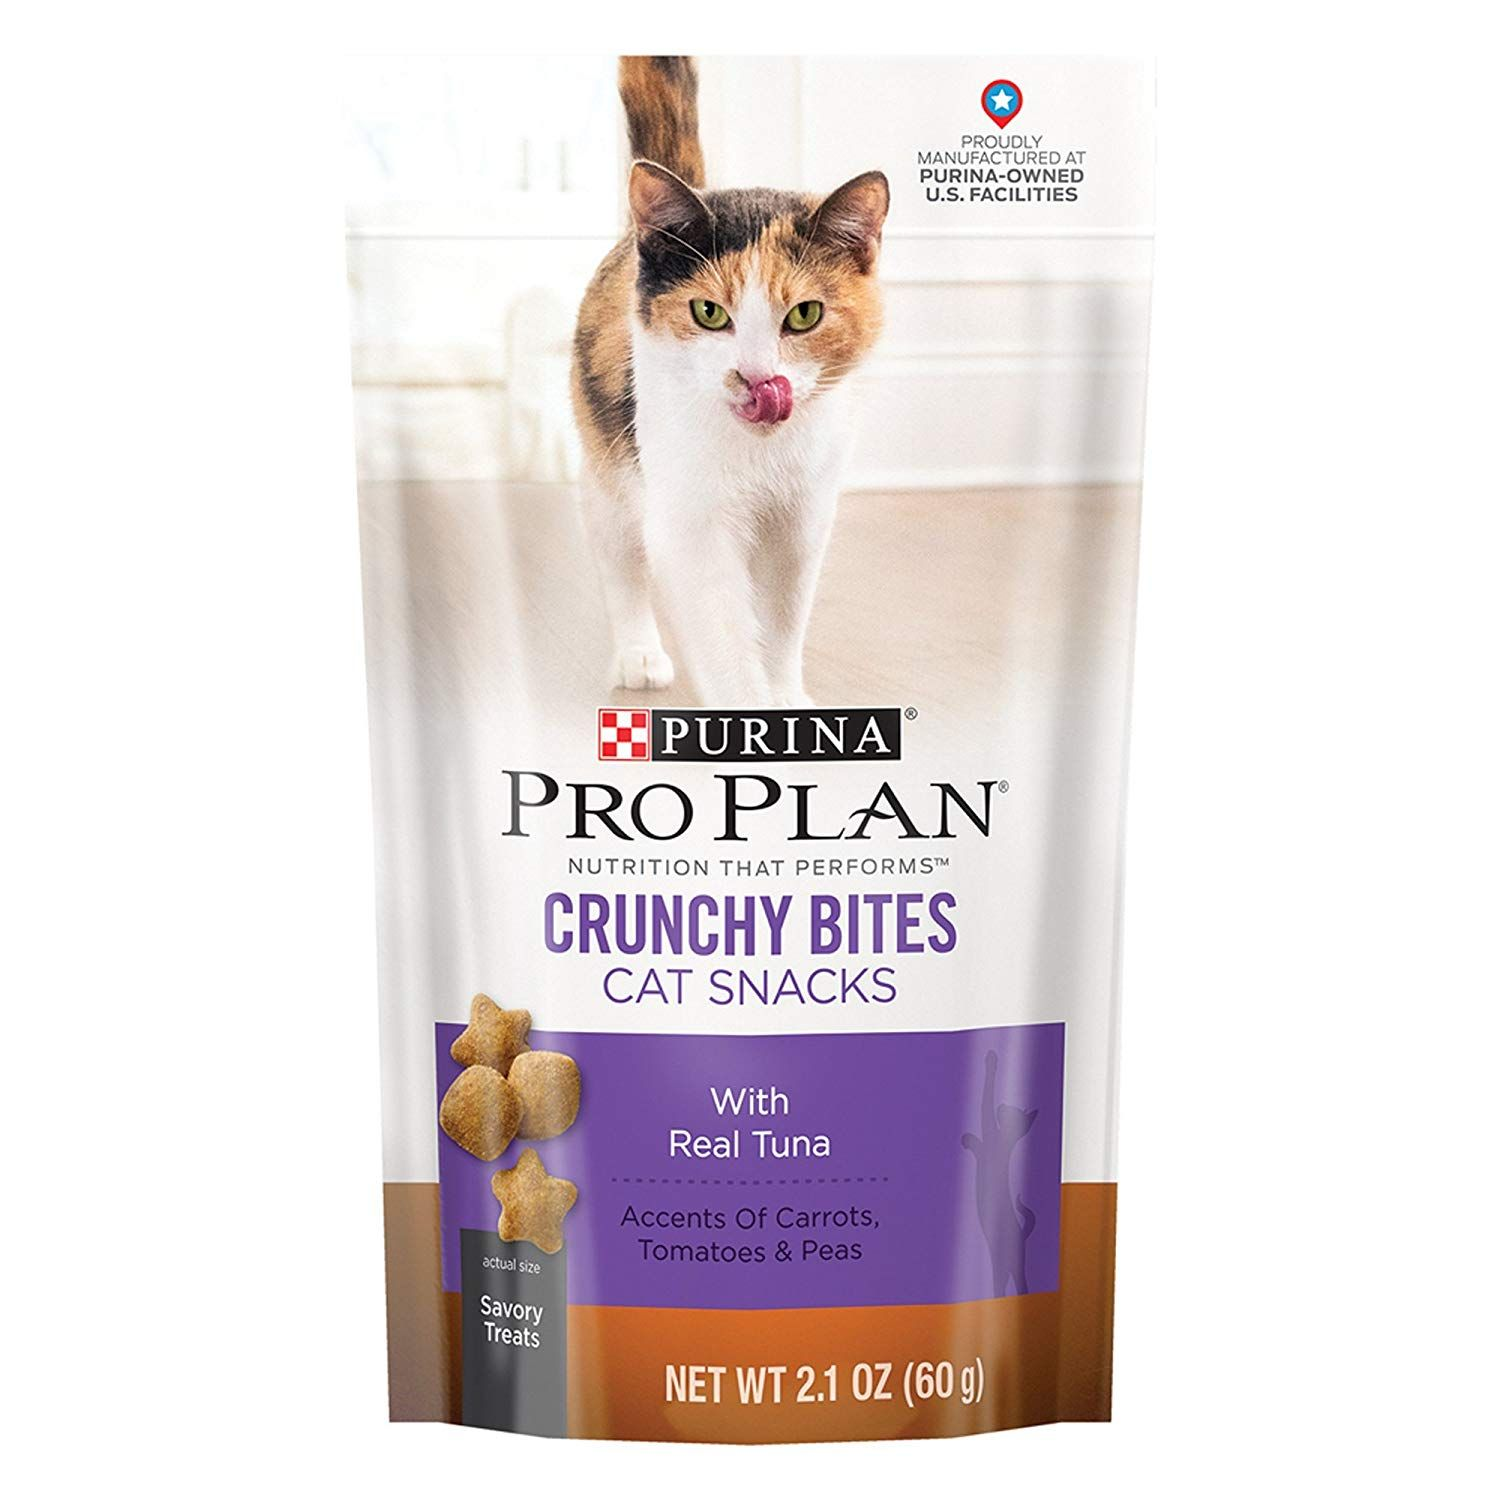 Purina Pro Plan Savory Bites Cat Treats 2 1 Oz Sincerely Hope You Do Love The Photo This Is Our Affiliate Link Purina Pro Plan Crunchy Bites Cat Snacks